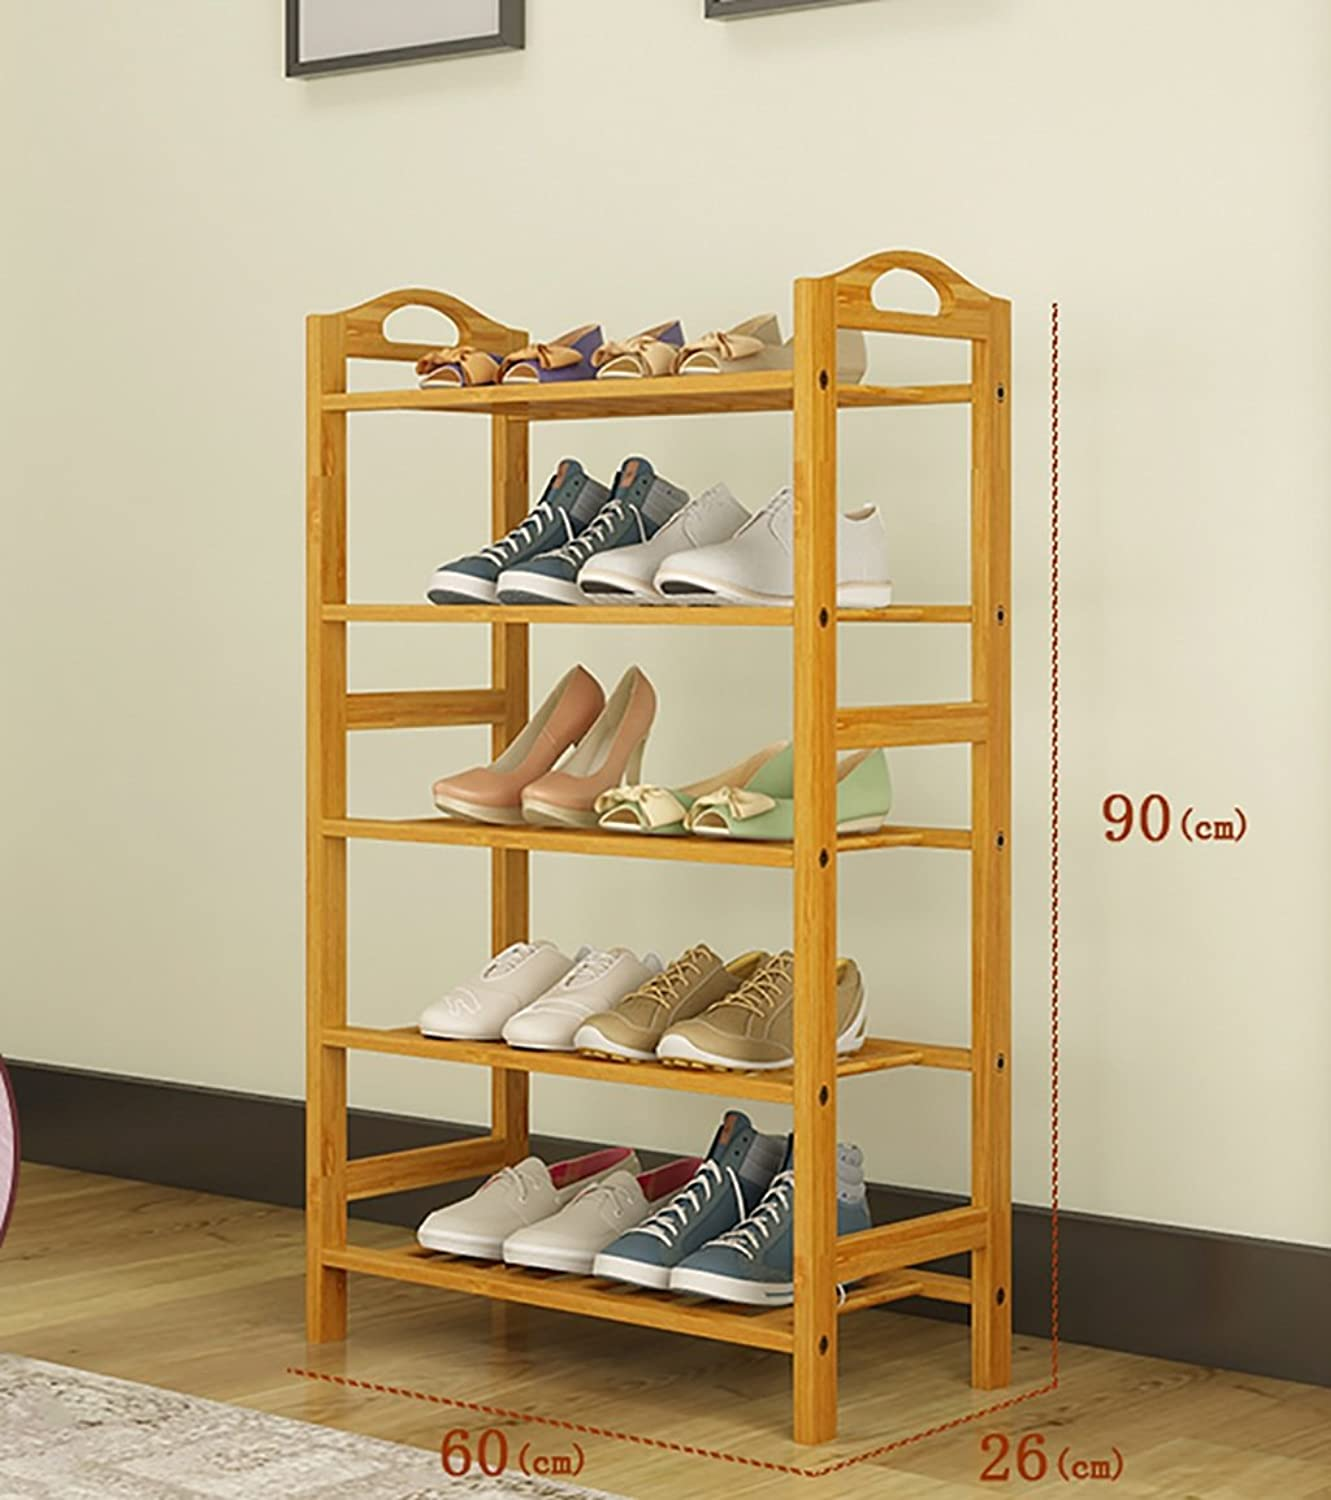 shoes Bench Organizing Rack Natural Bamboo shoes Rack Five-Layer Unit Shelf Simple Storage shoes Rack (Size   60  26  90cm)